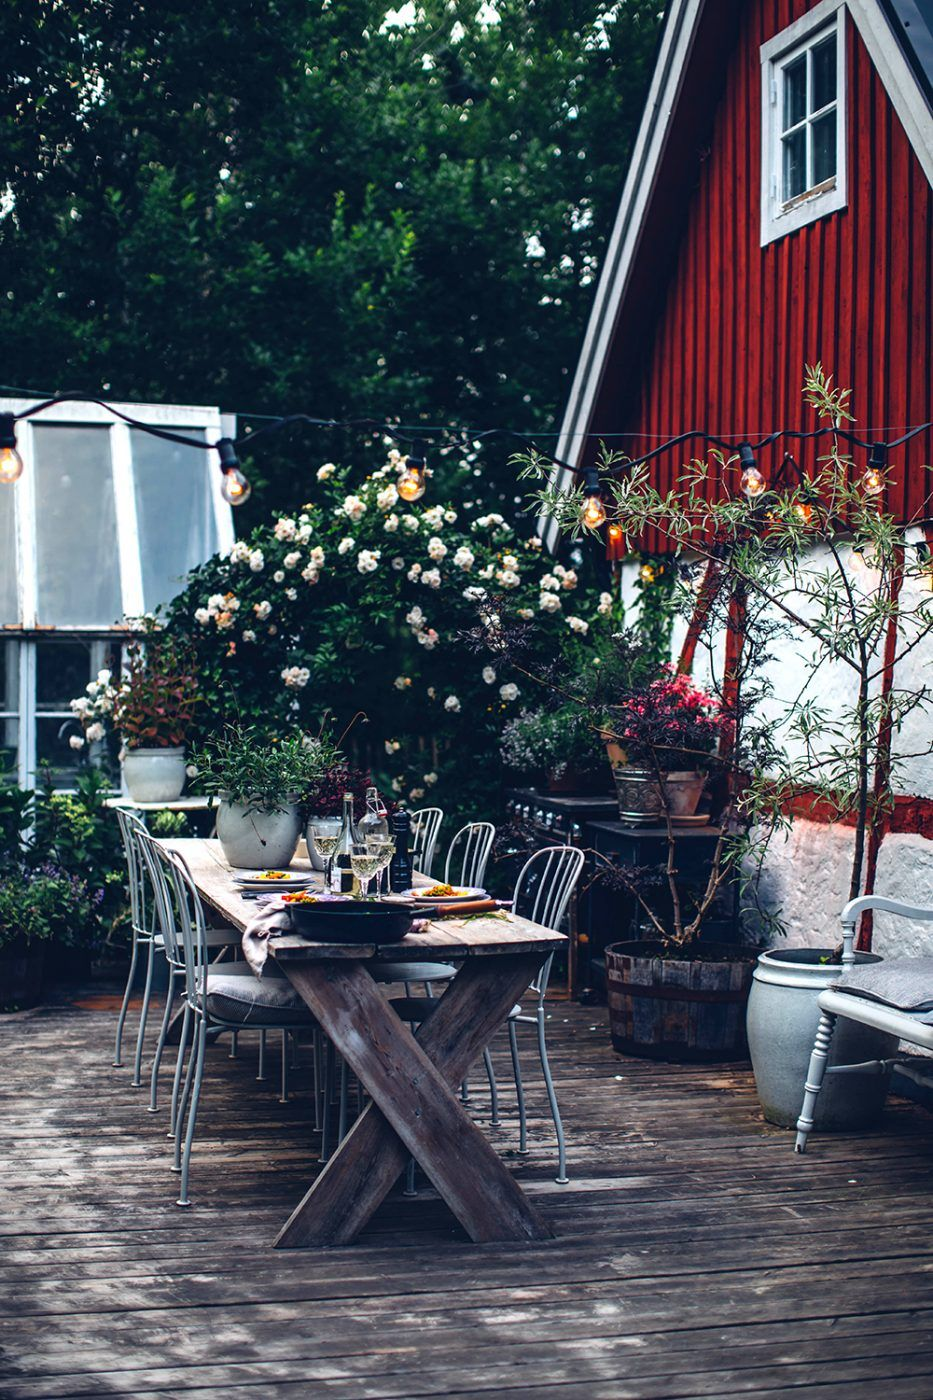 Image for Visit Skåne – a wonderful week in Sweden